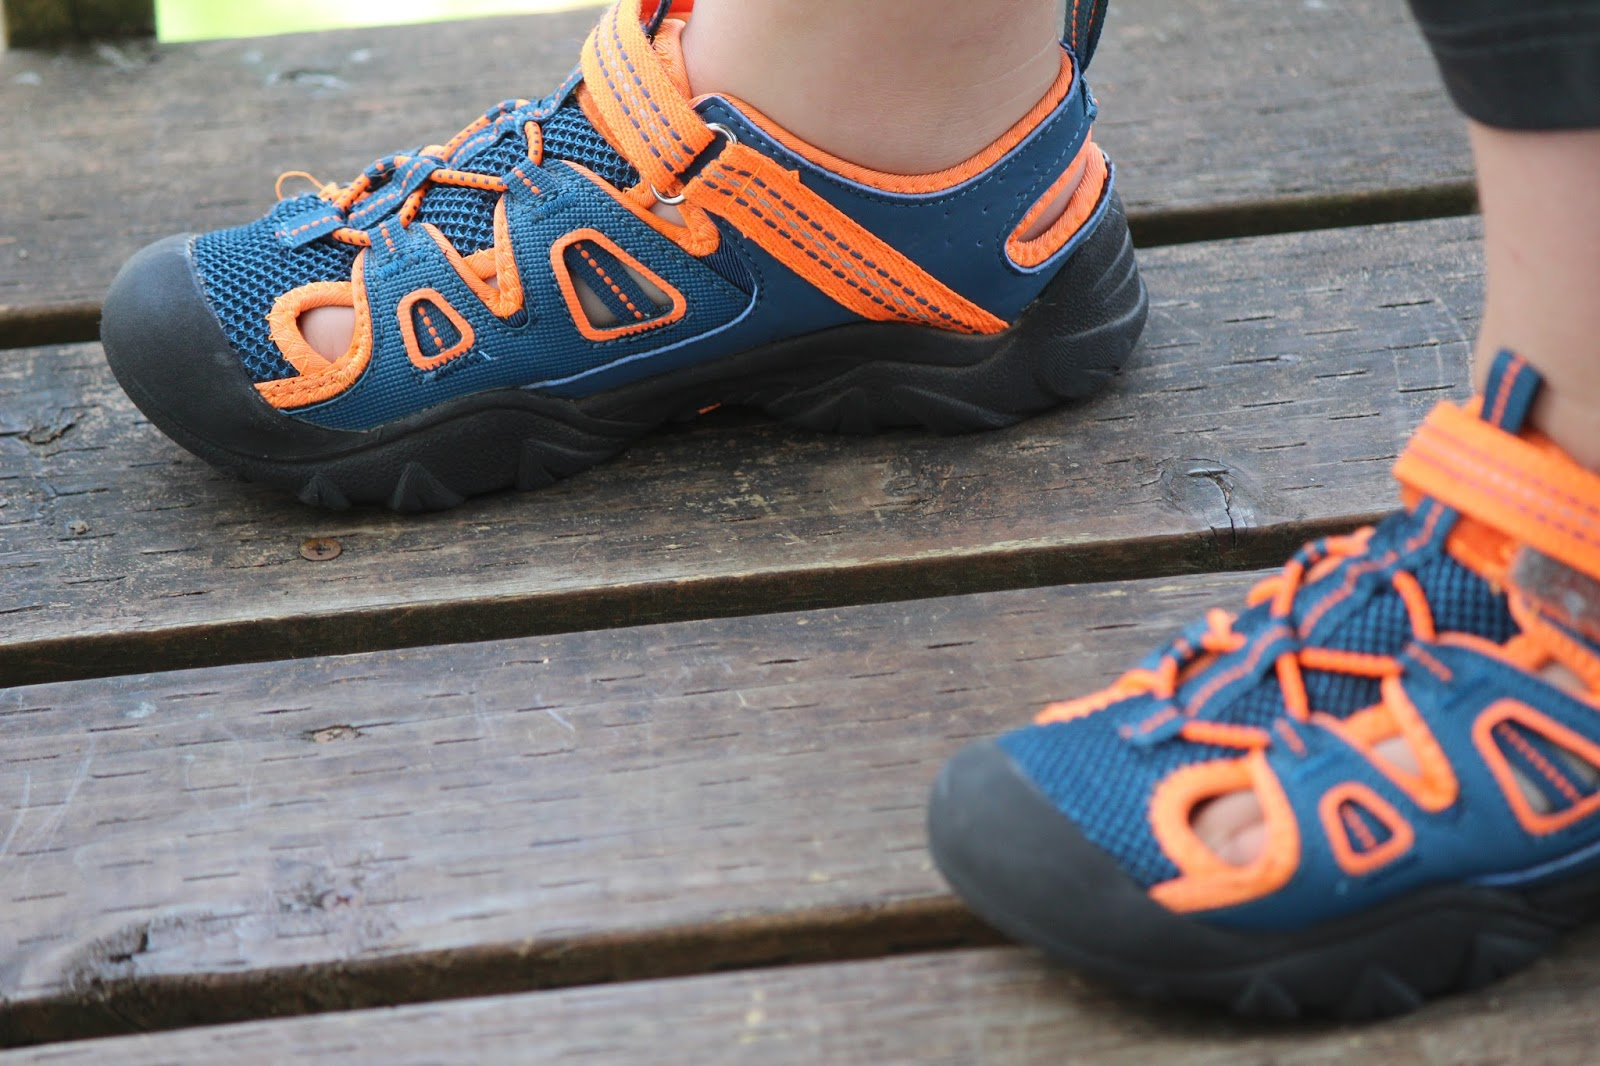 With The MAP Sandals We Found That These Are Great For Everyday Play And Adventure Allowing My Little Guy To Grab His Shoes Run Out Door When